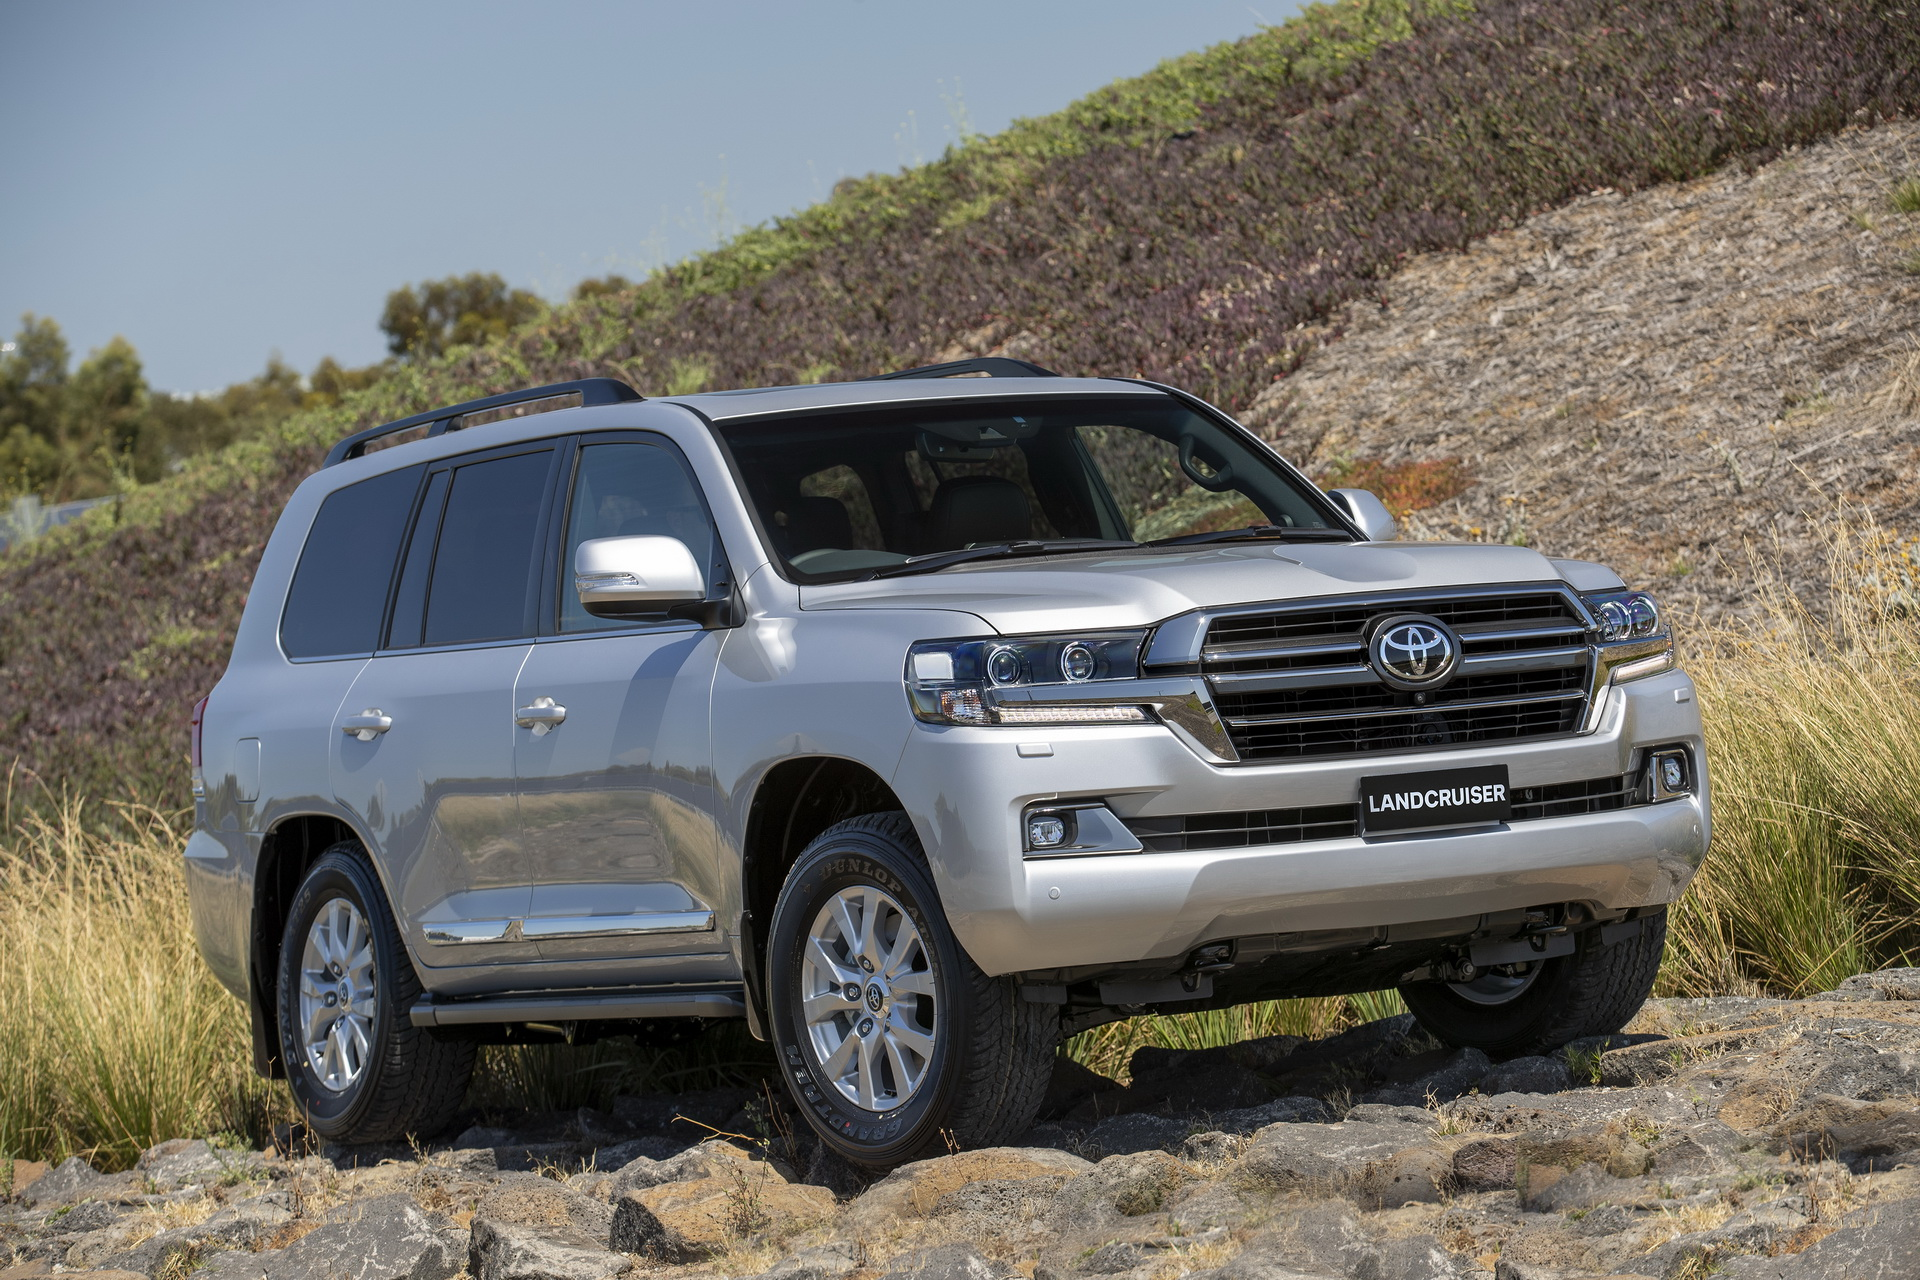 2020 Land Cruiser New Model and Performance